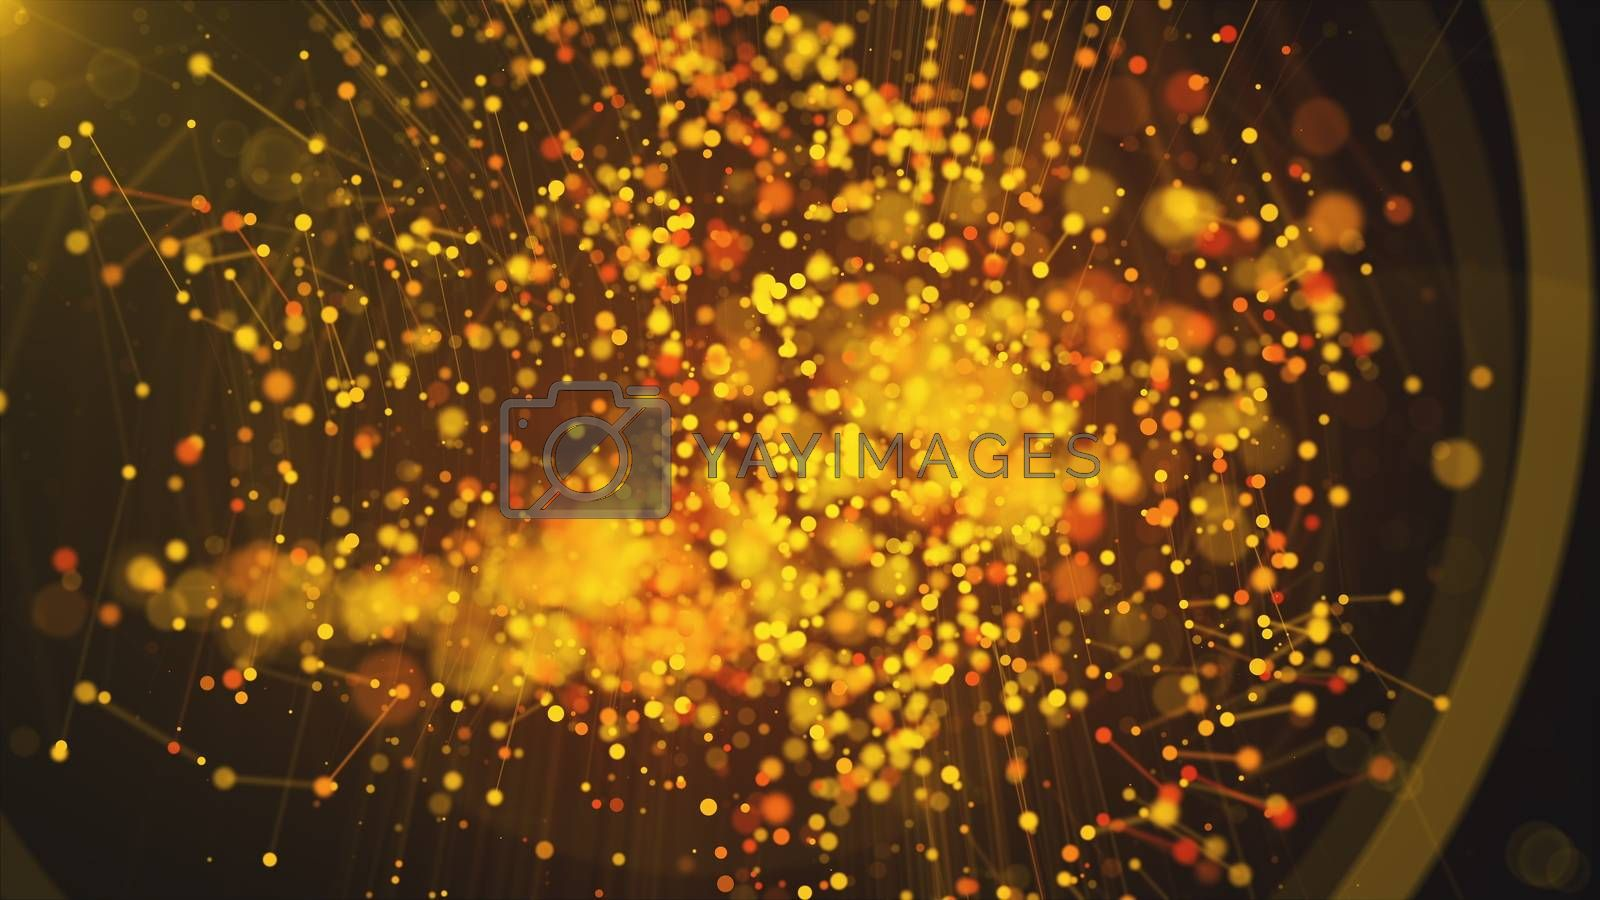 Computer generated abstract beautiful background. Gold particles, dots and lines, 3d rendering.